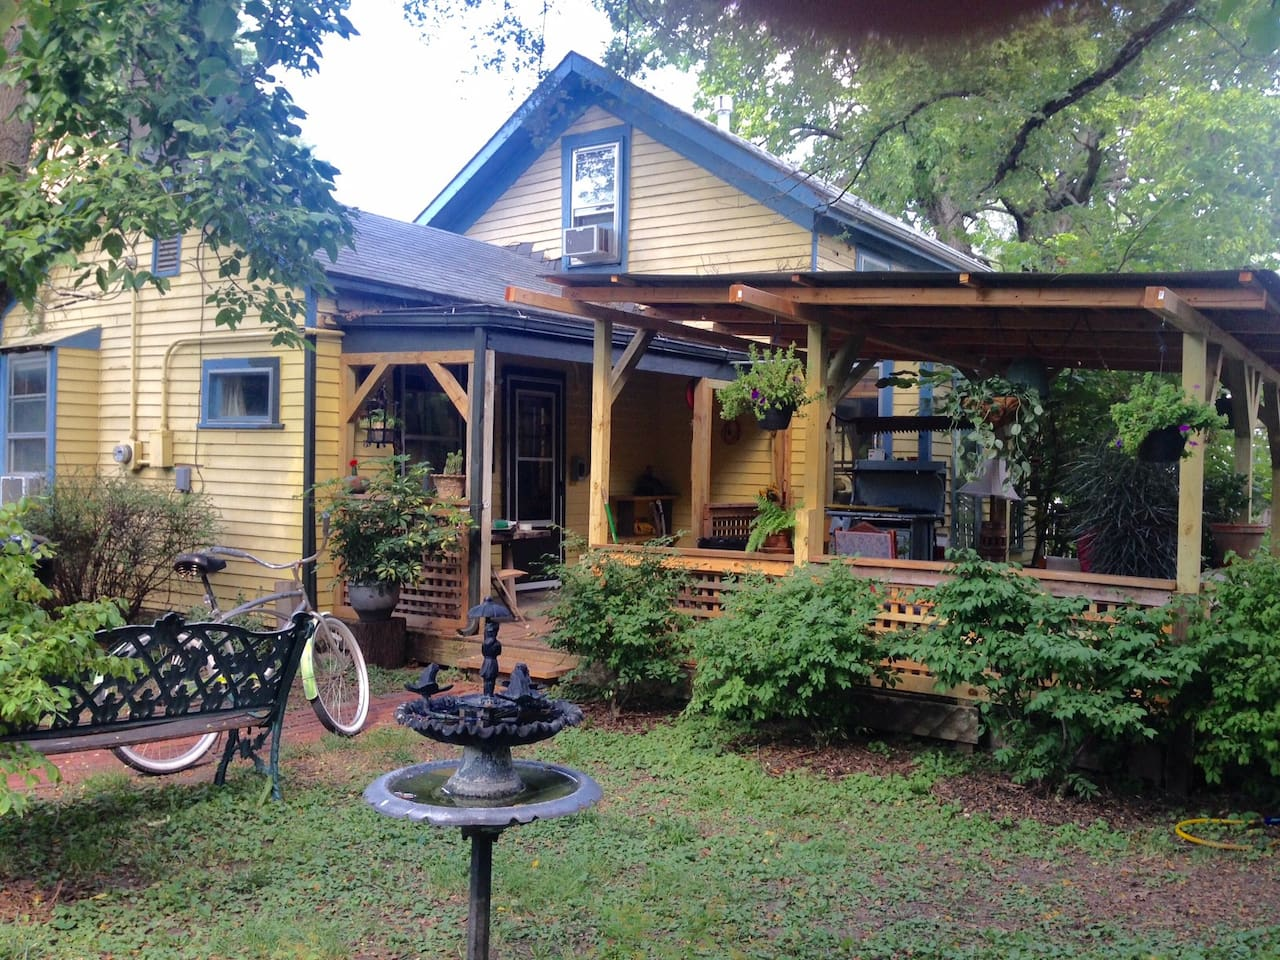 """Roberta 2019 """"This is a lovely house full of thoughtful extras. It was just like being at home, and the pictures don't do it justice!"""" Back of house, back porch & yard - 5 birdhouses, 3 birdbaths! - Bird Watchers paradise, plus squirrels, bunnies..."""